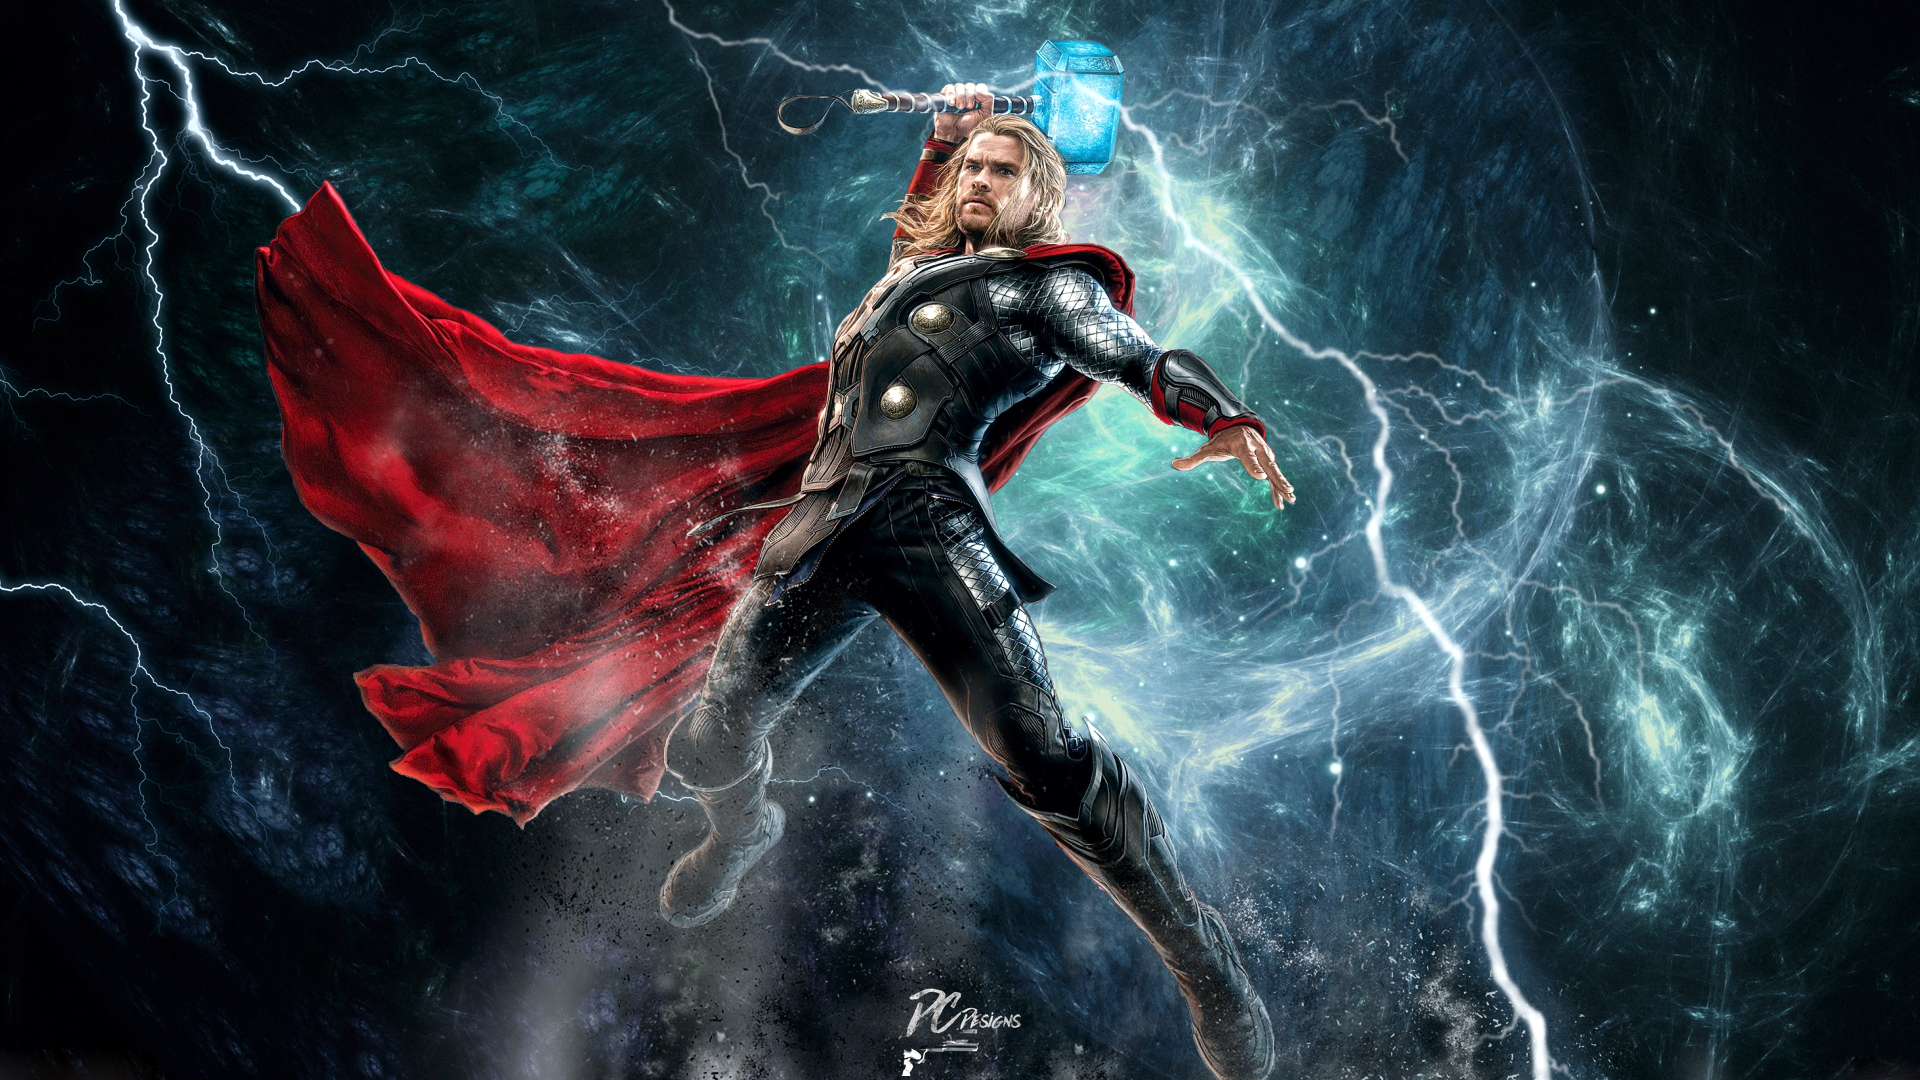 Image For Thor Wallpapers Hd For Desktop Thor Wallpaper Chris Hemsworth Thor Thor